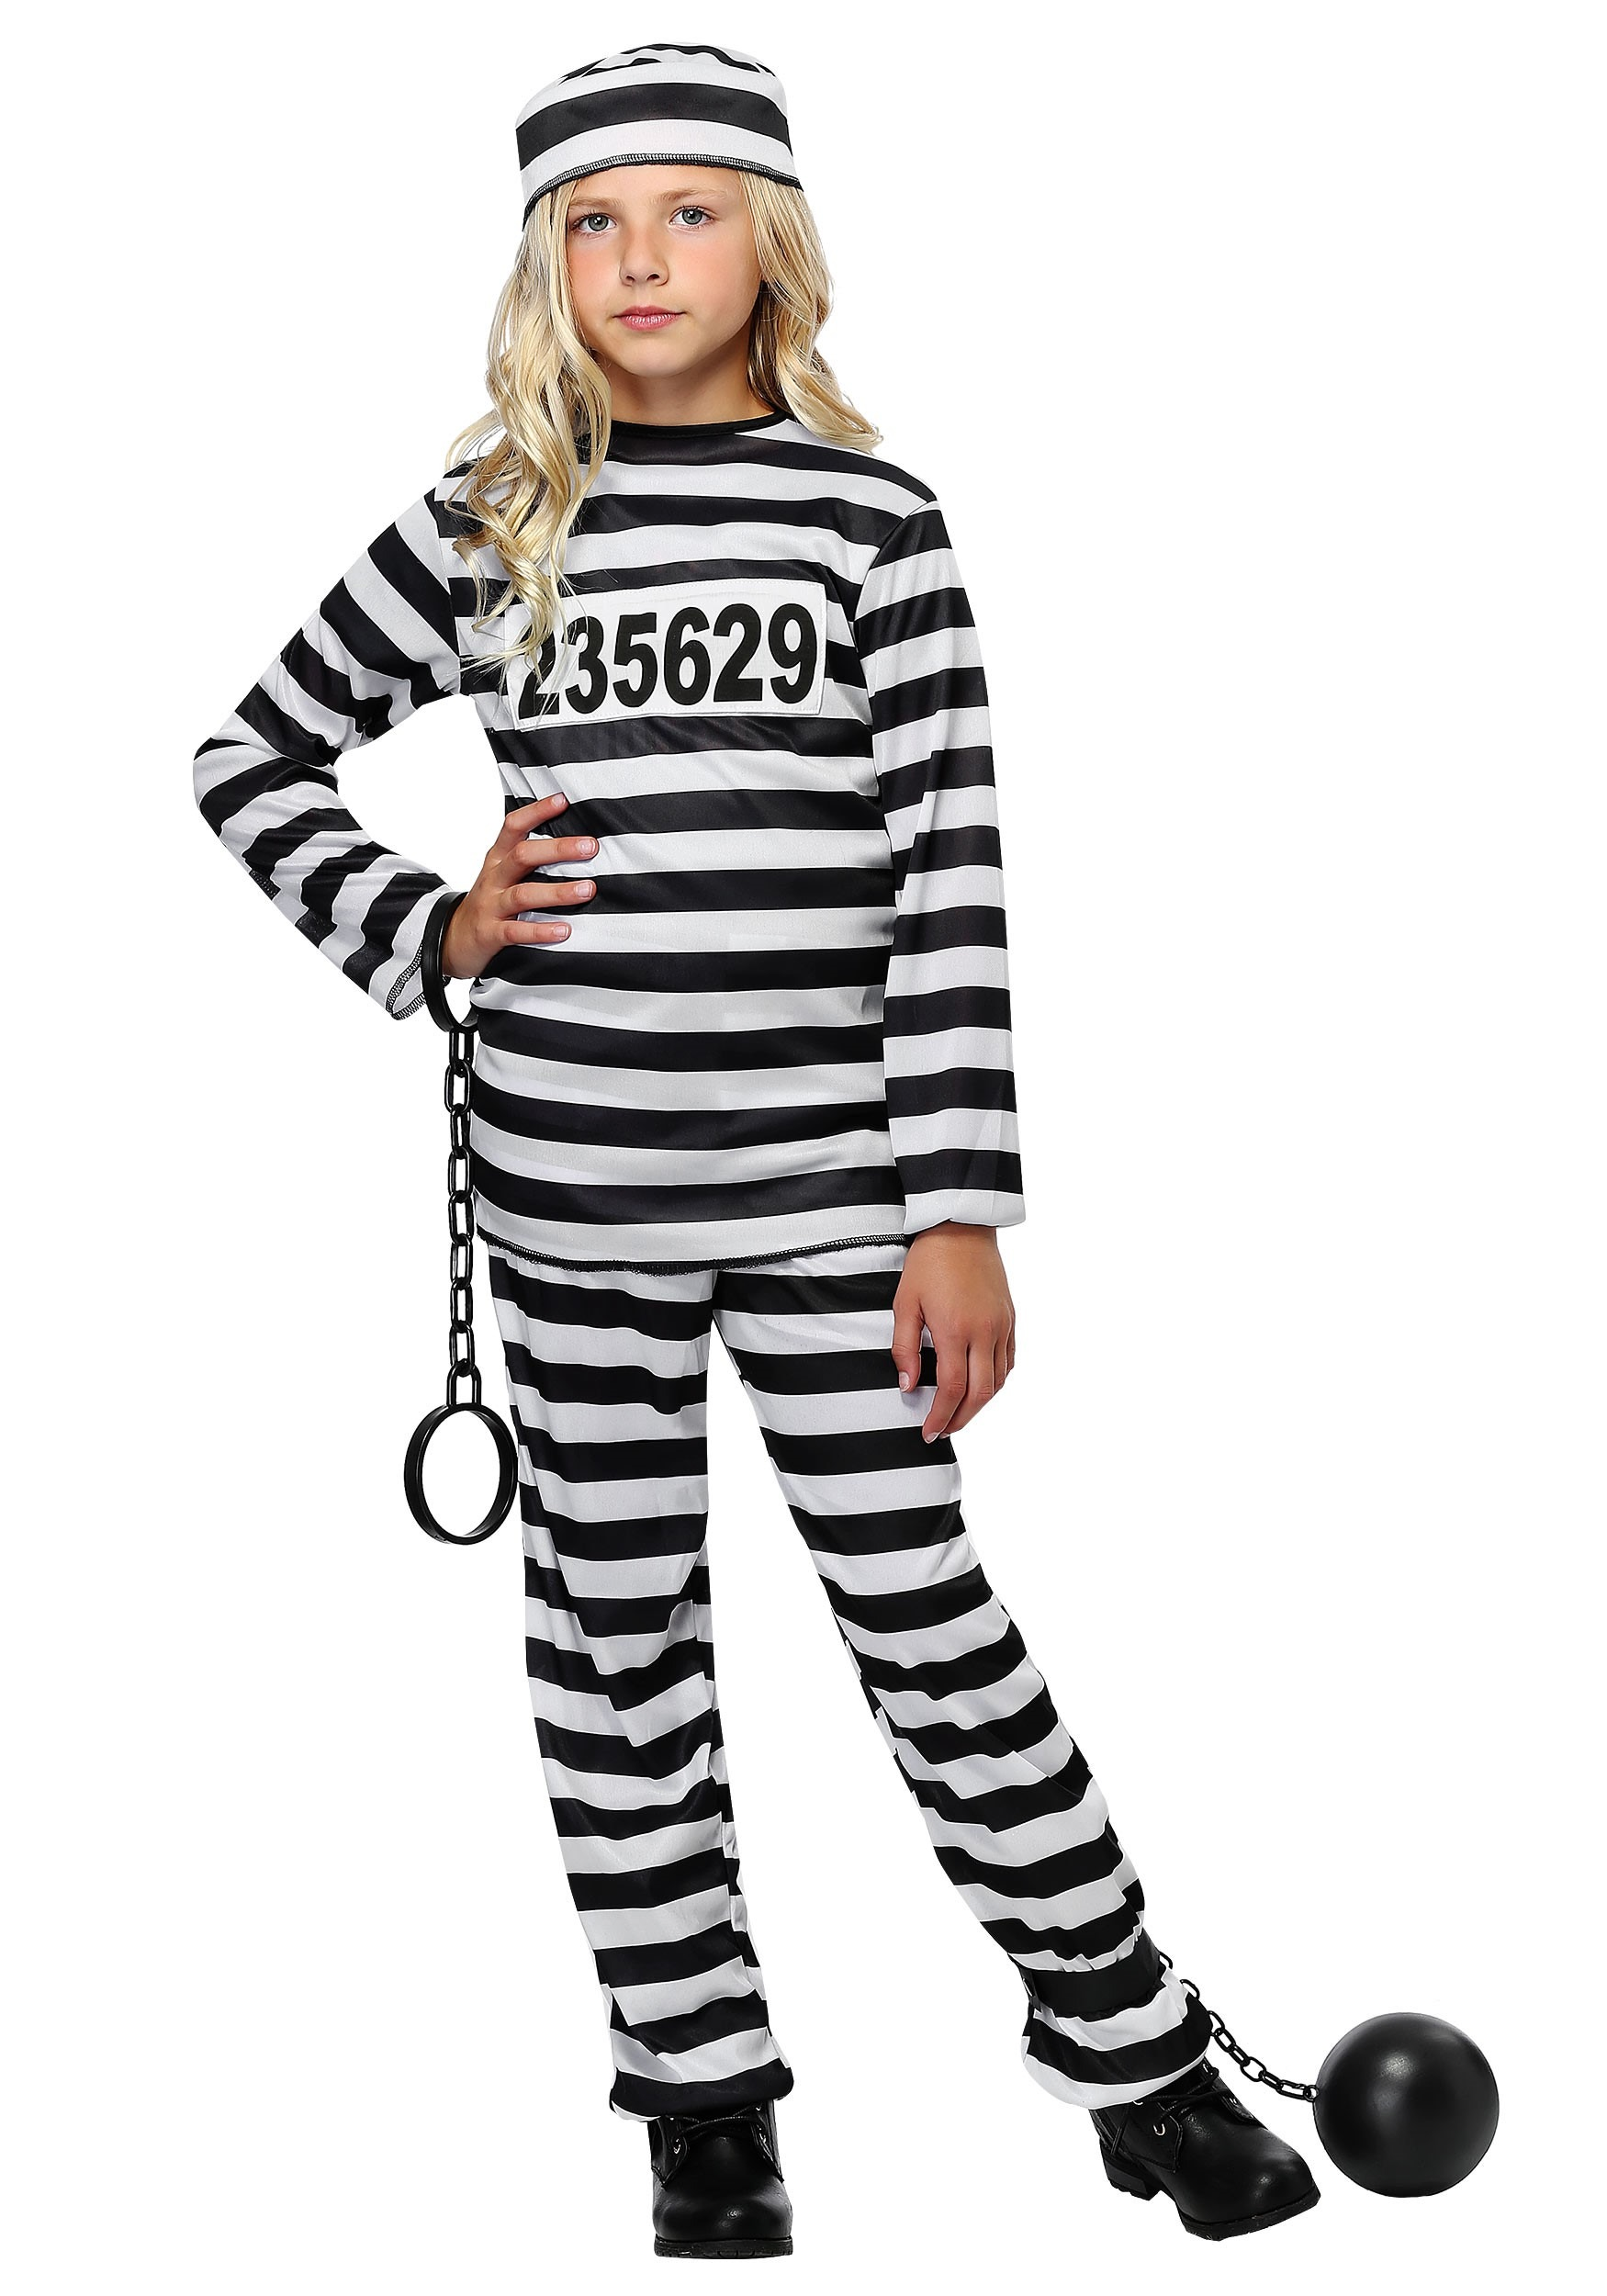 sc 1 st  Halloween Costumes & Girlu0027s Prisoner Costume